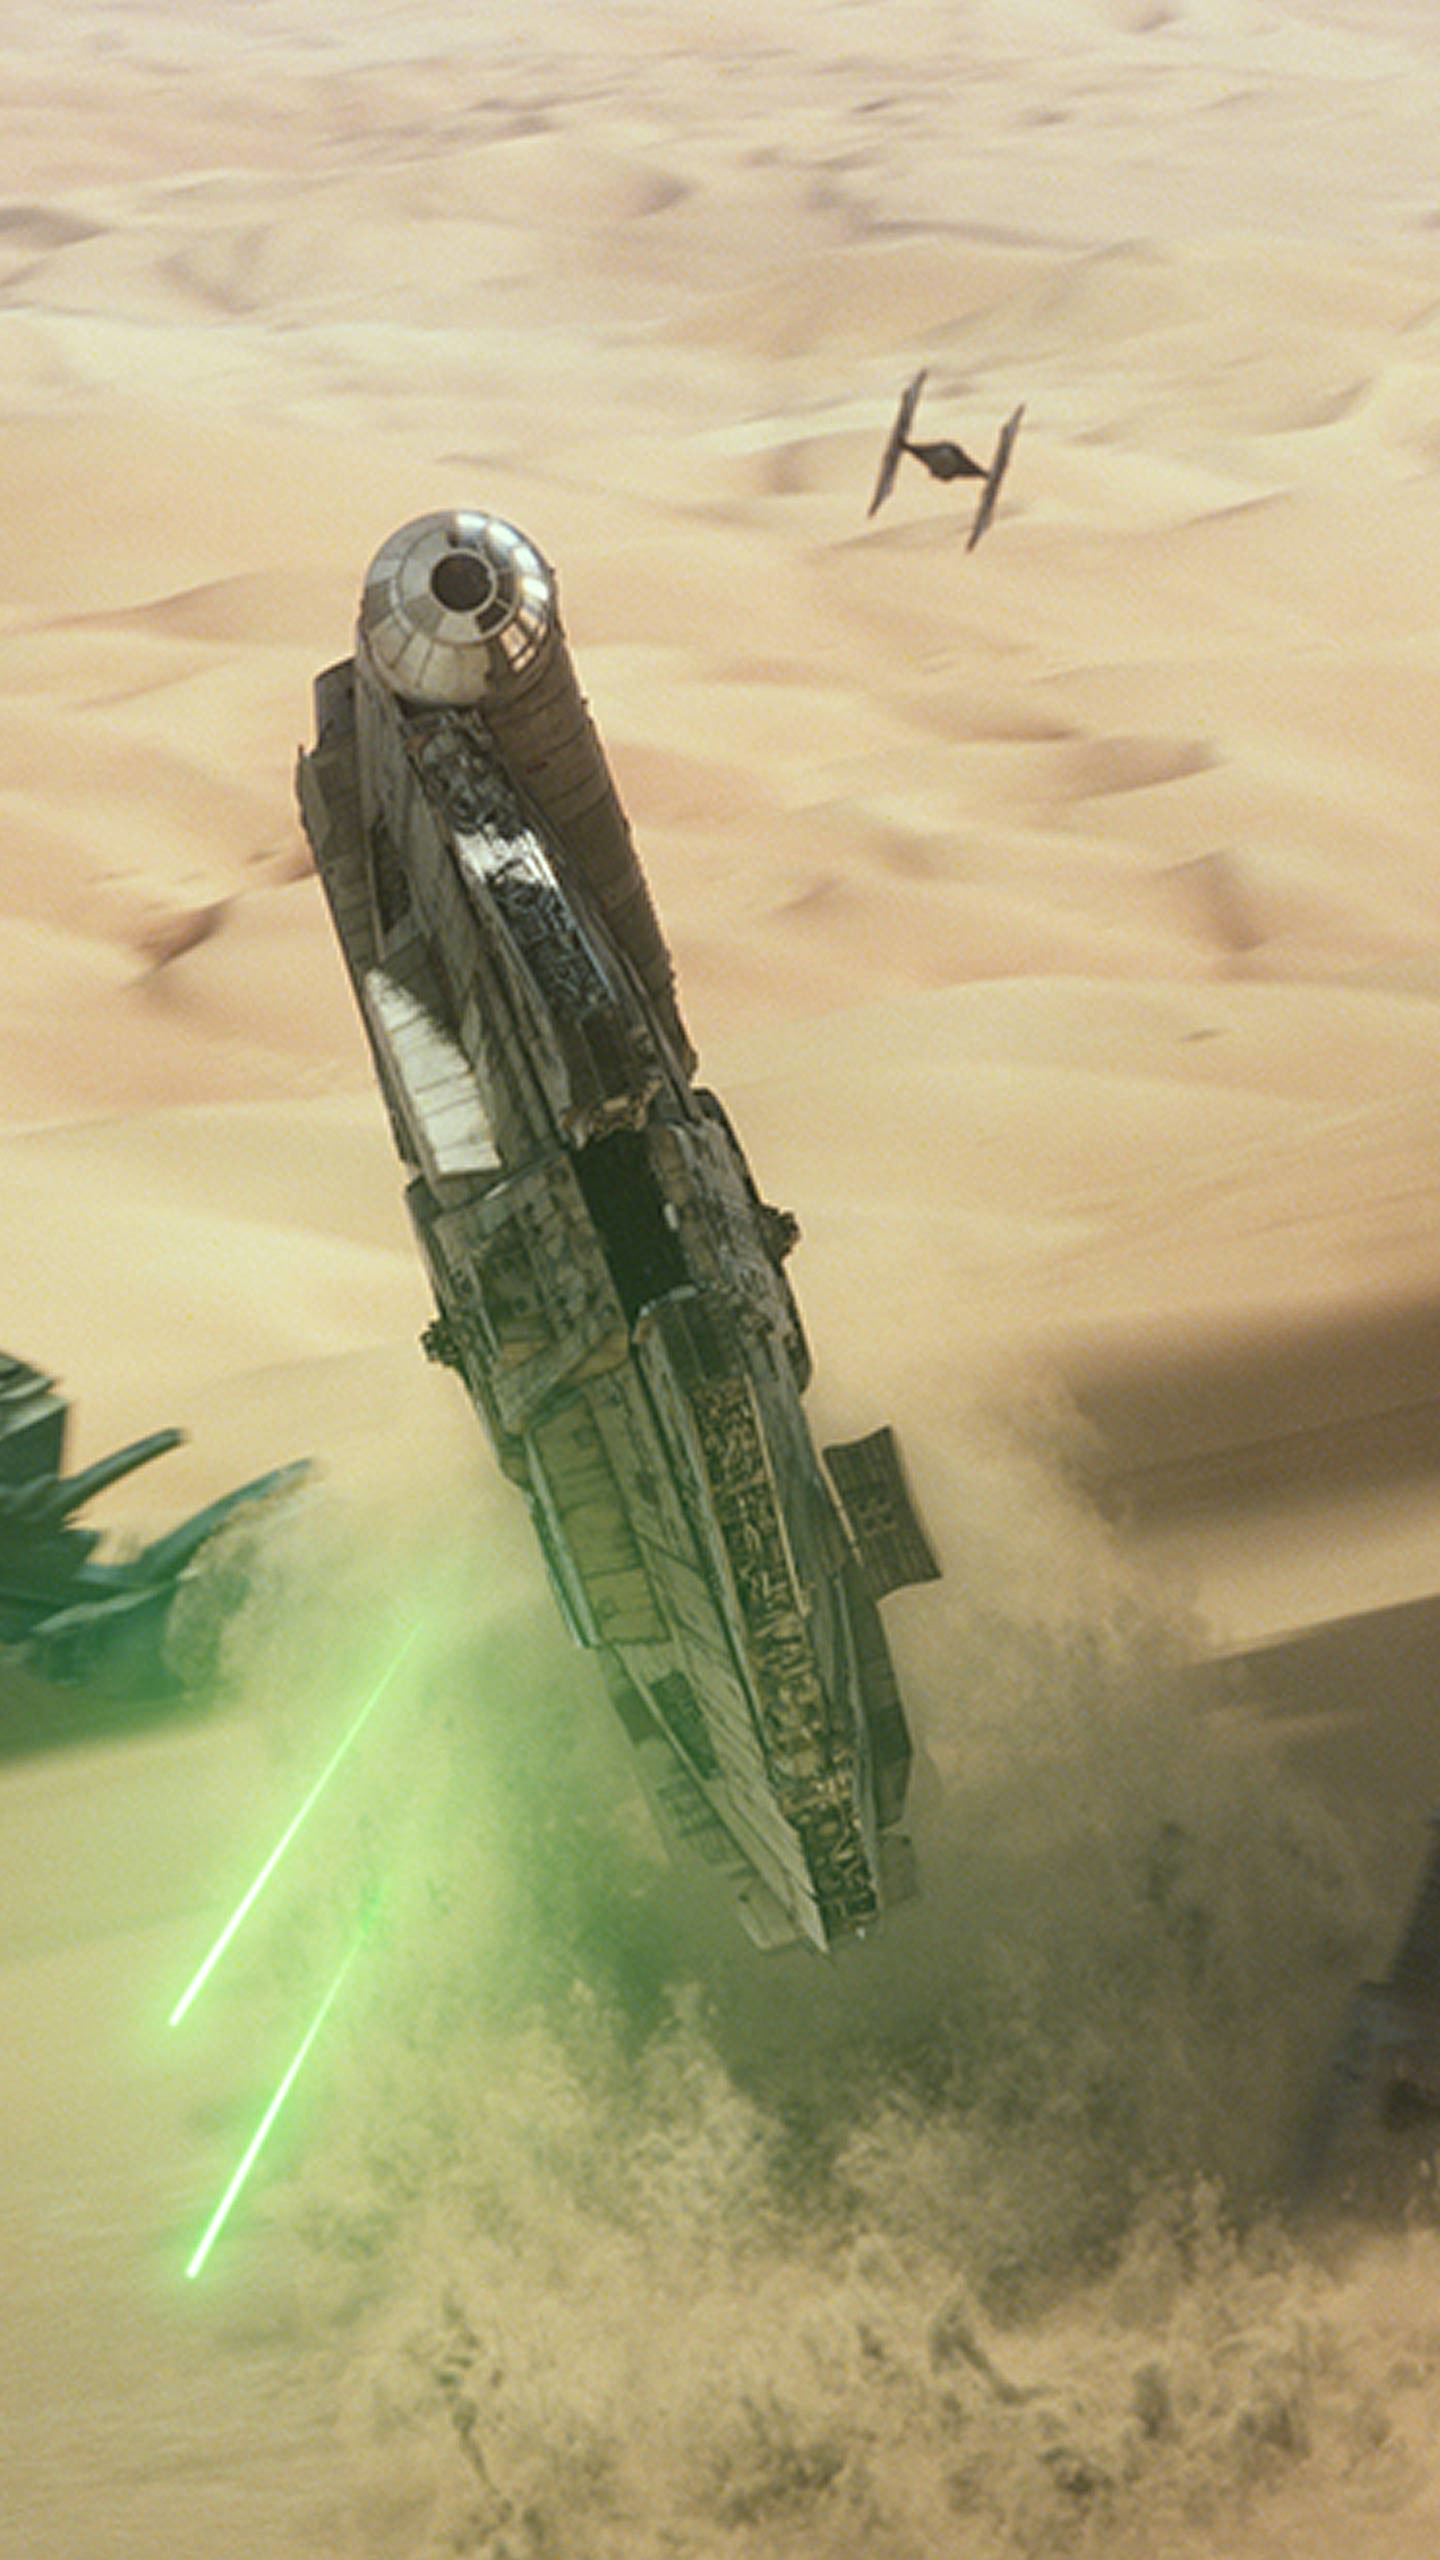 1440x2560 Star Wars: The Force Awakens wallpapers for your iPhone 6s and